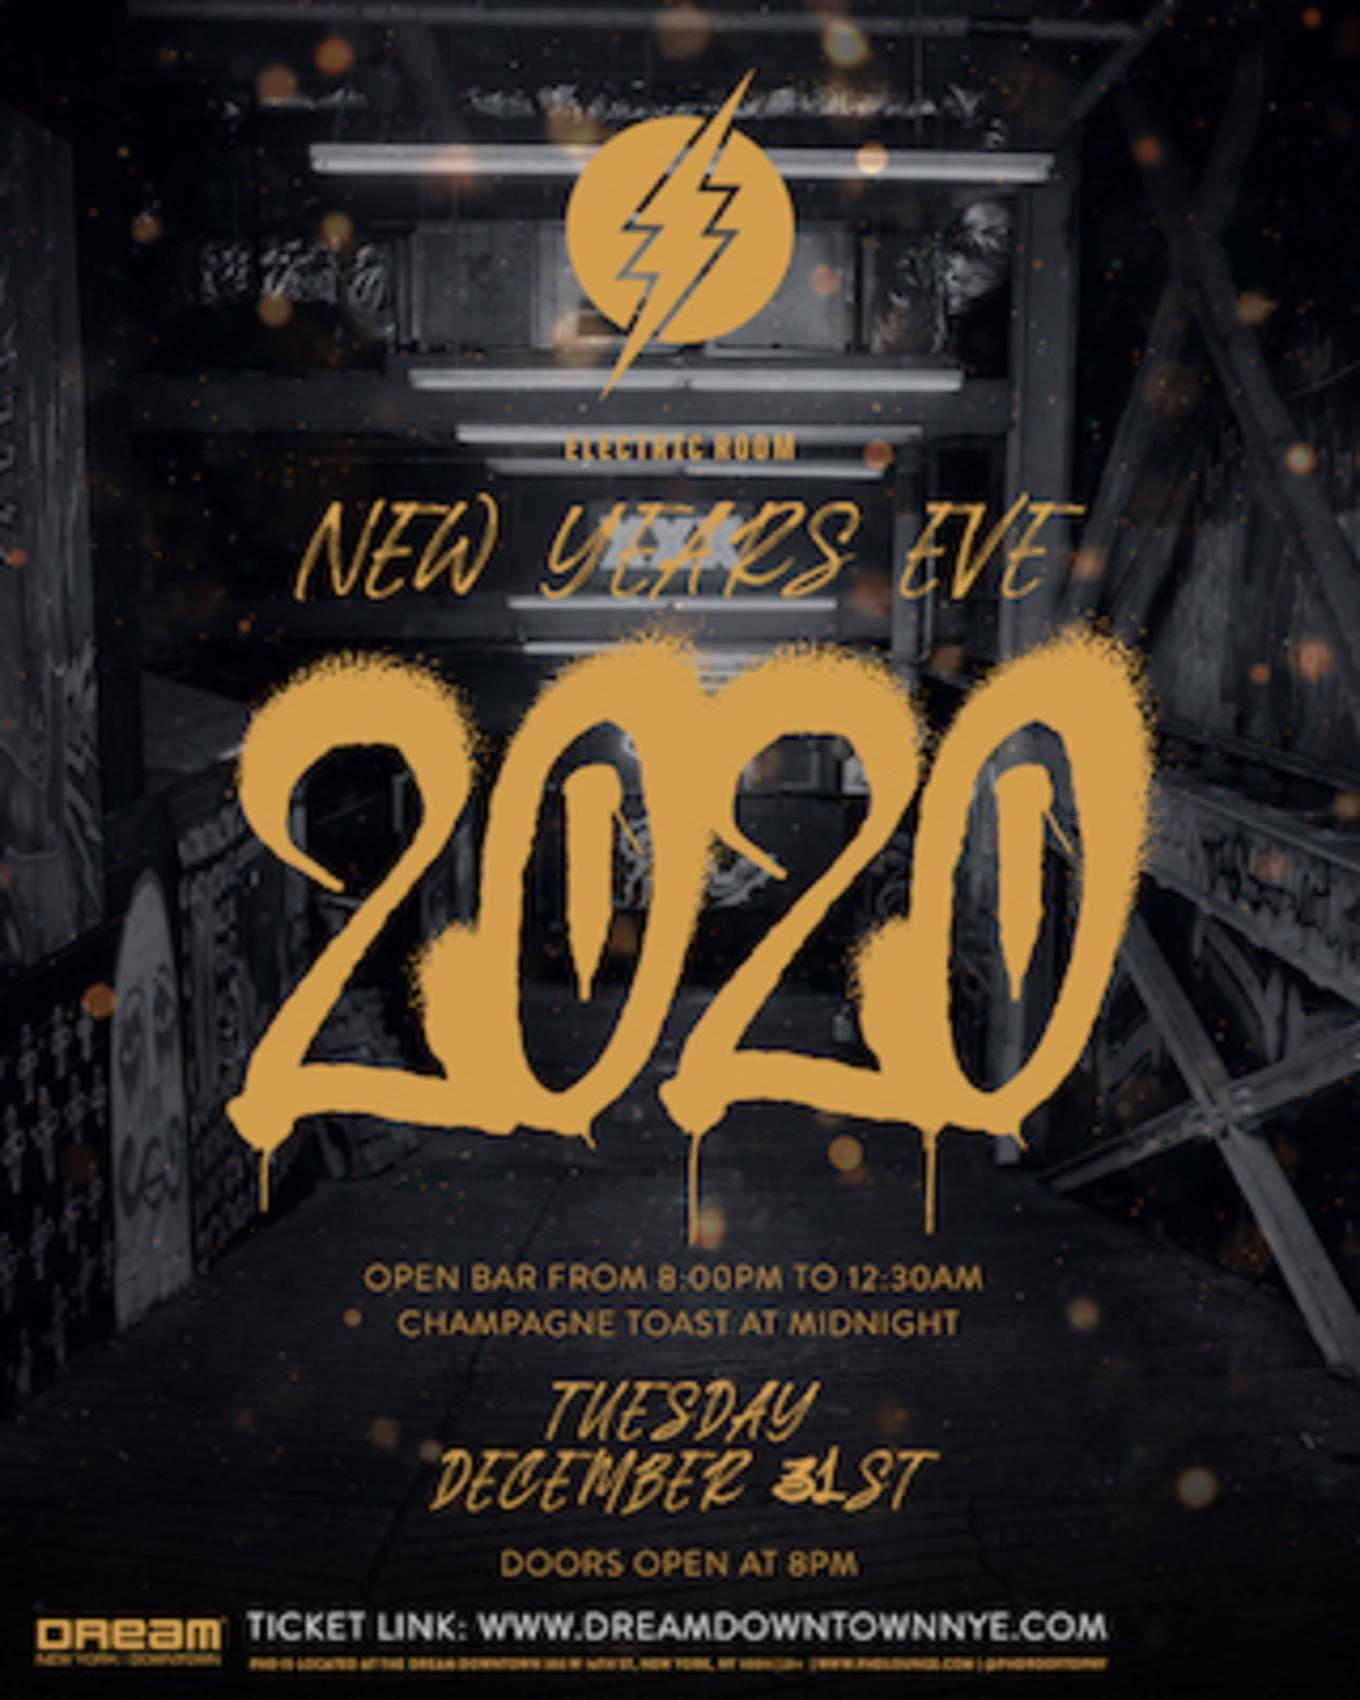 Electric Room at Dream Downtown New Year's Eve 2020